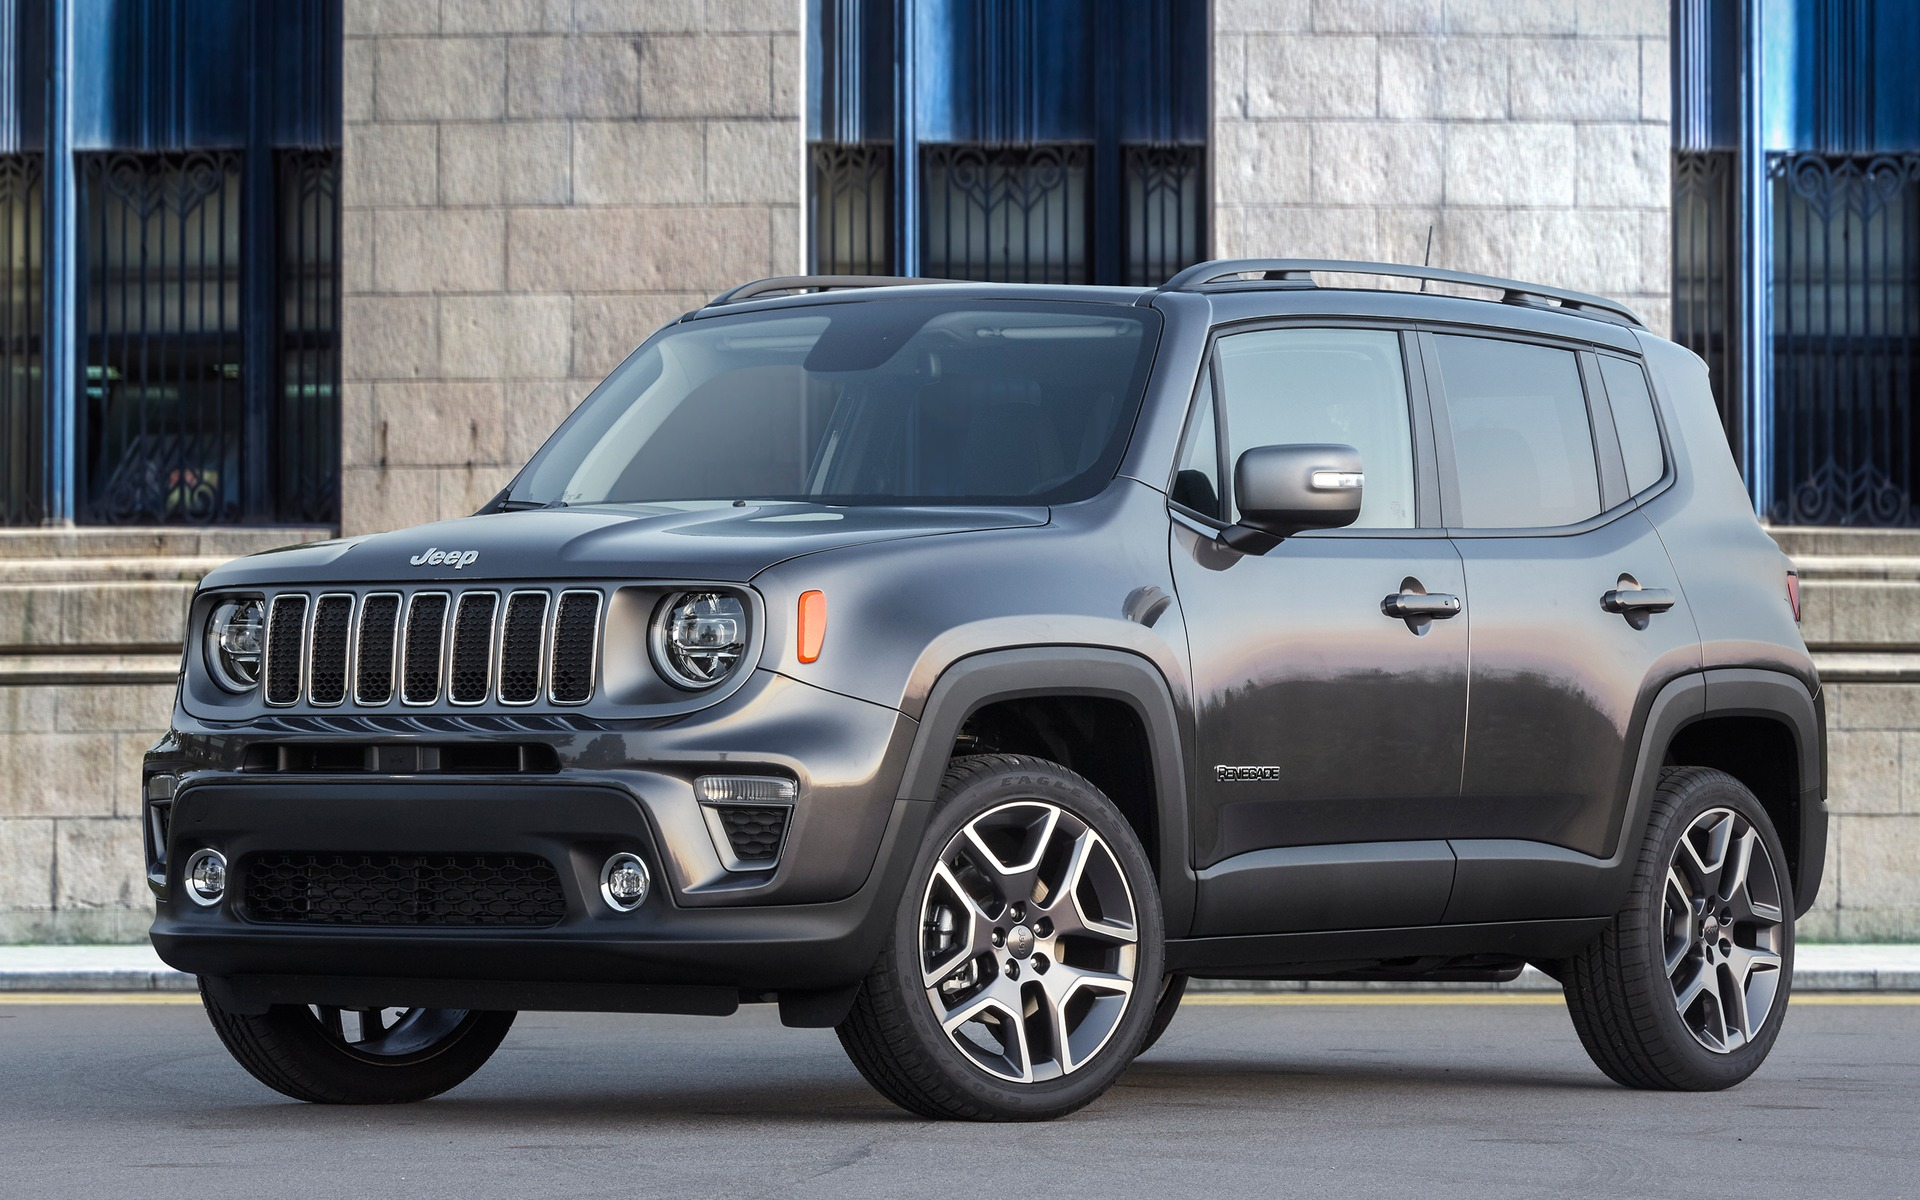 jeep renegade 2019 nouveau moteur nouveau style 3 10. Black Bedroom Furniture Sets. Home Design Ideas